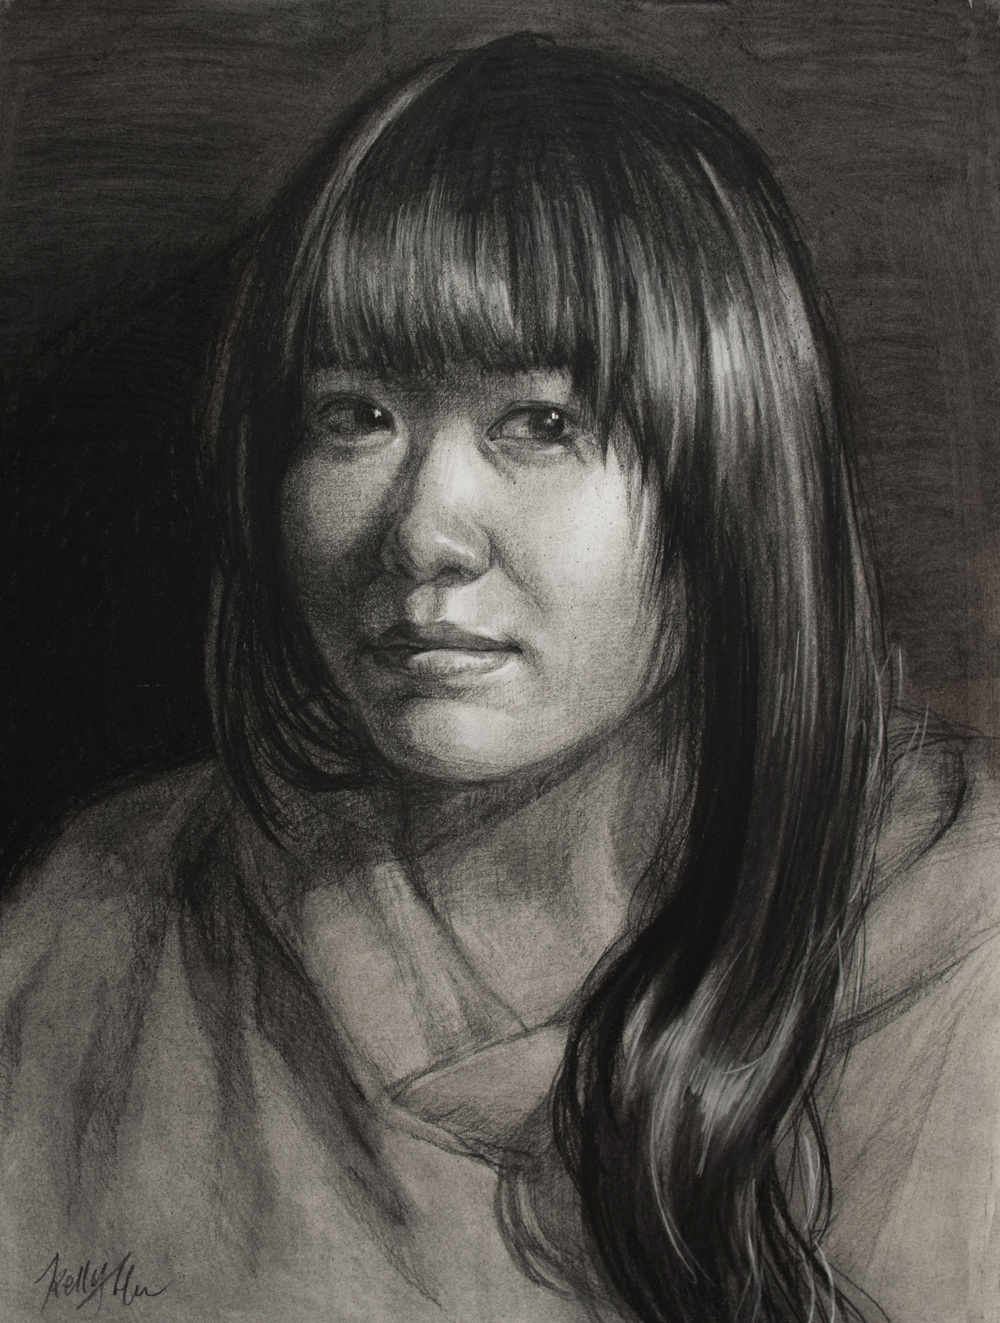 Self Portrait, 6hr. Charcoal on paper